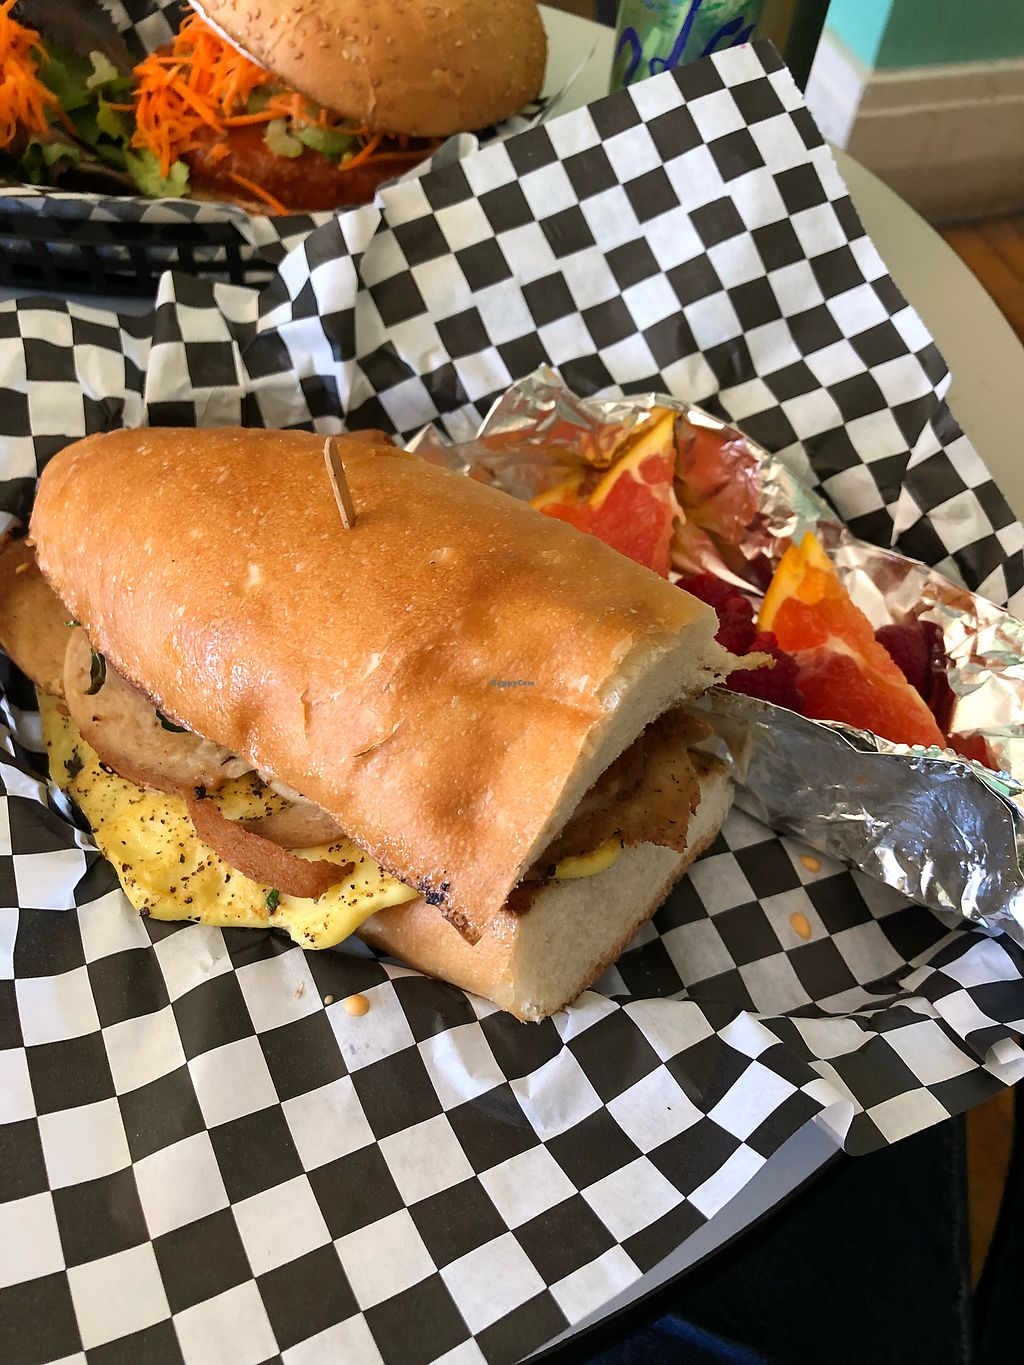 """Photo of Berben and Wolff's Vegan Delicatessen  by <a href=""""/members/profile/KaitlynnGill"""">KaitlynnGill</a> <br/>Breakfast sammy <br/> February 3, 2018  - <a href='/contact/abuse/image/73663/354422'>Report</a>"""